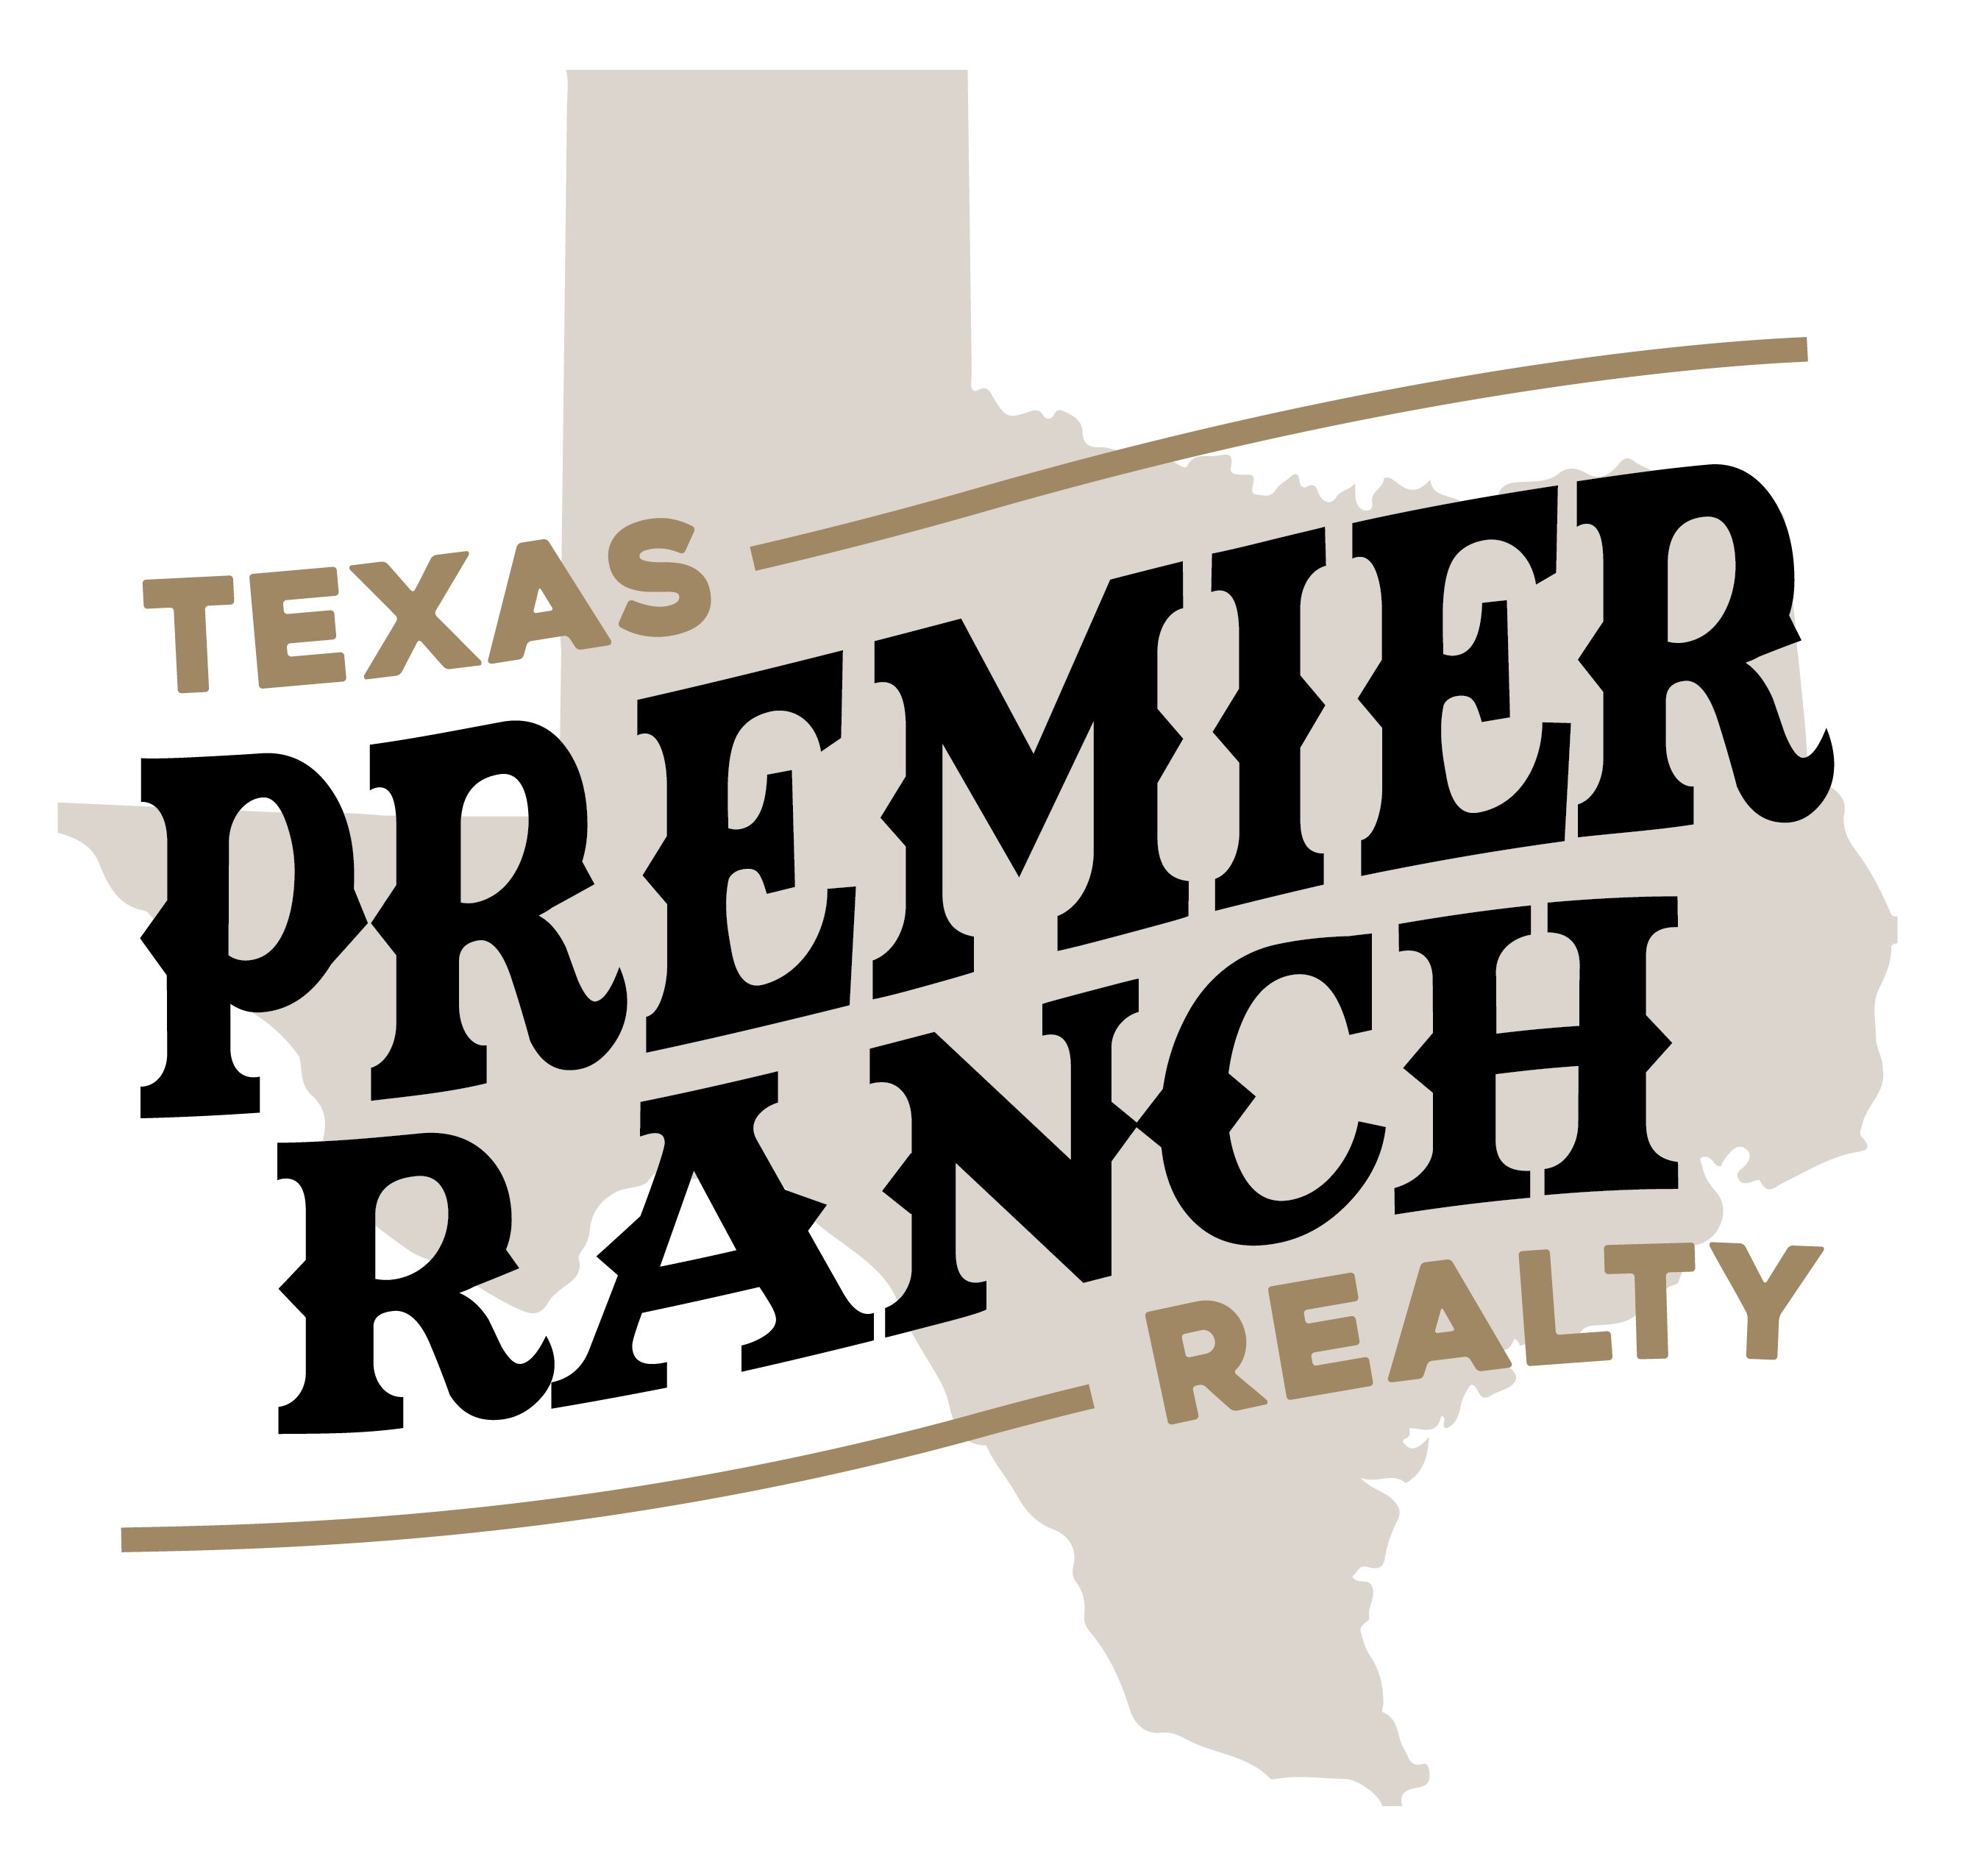 Texas Premier Ranch Realty | South Texas and Texas Hill Country Ranches for Sale